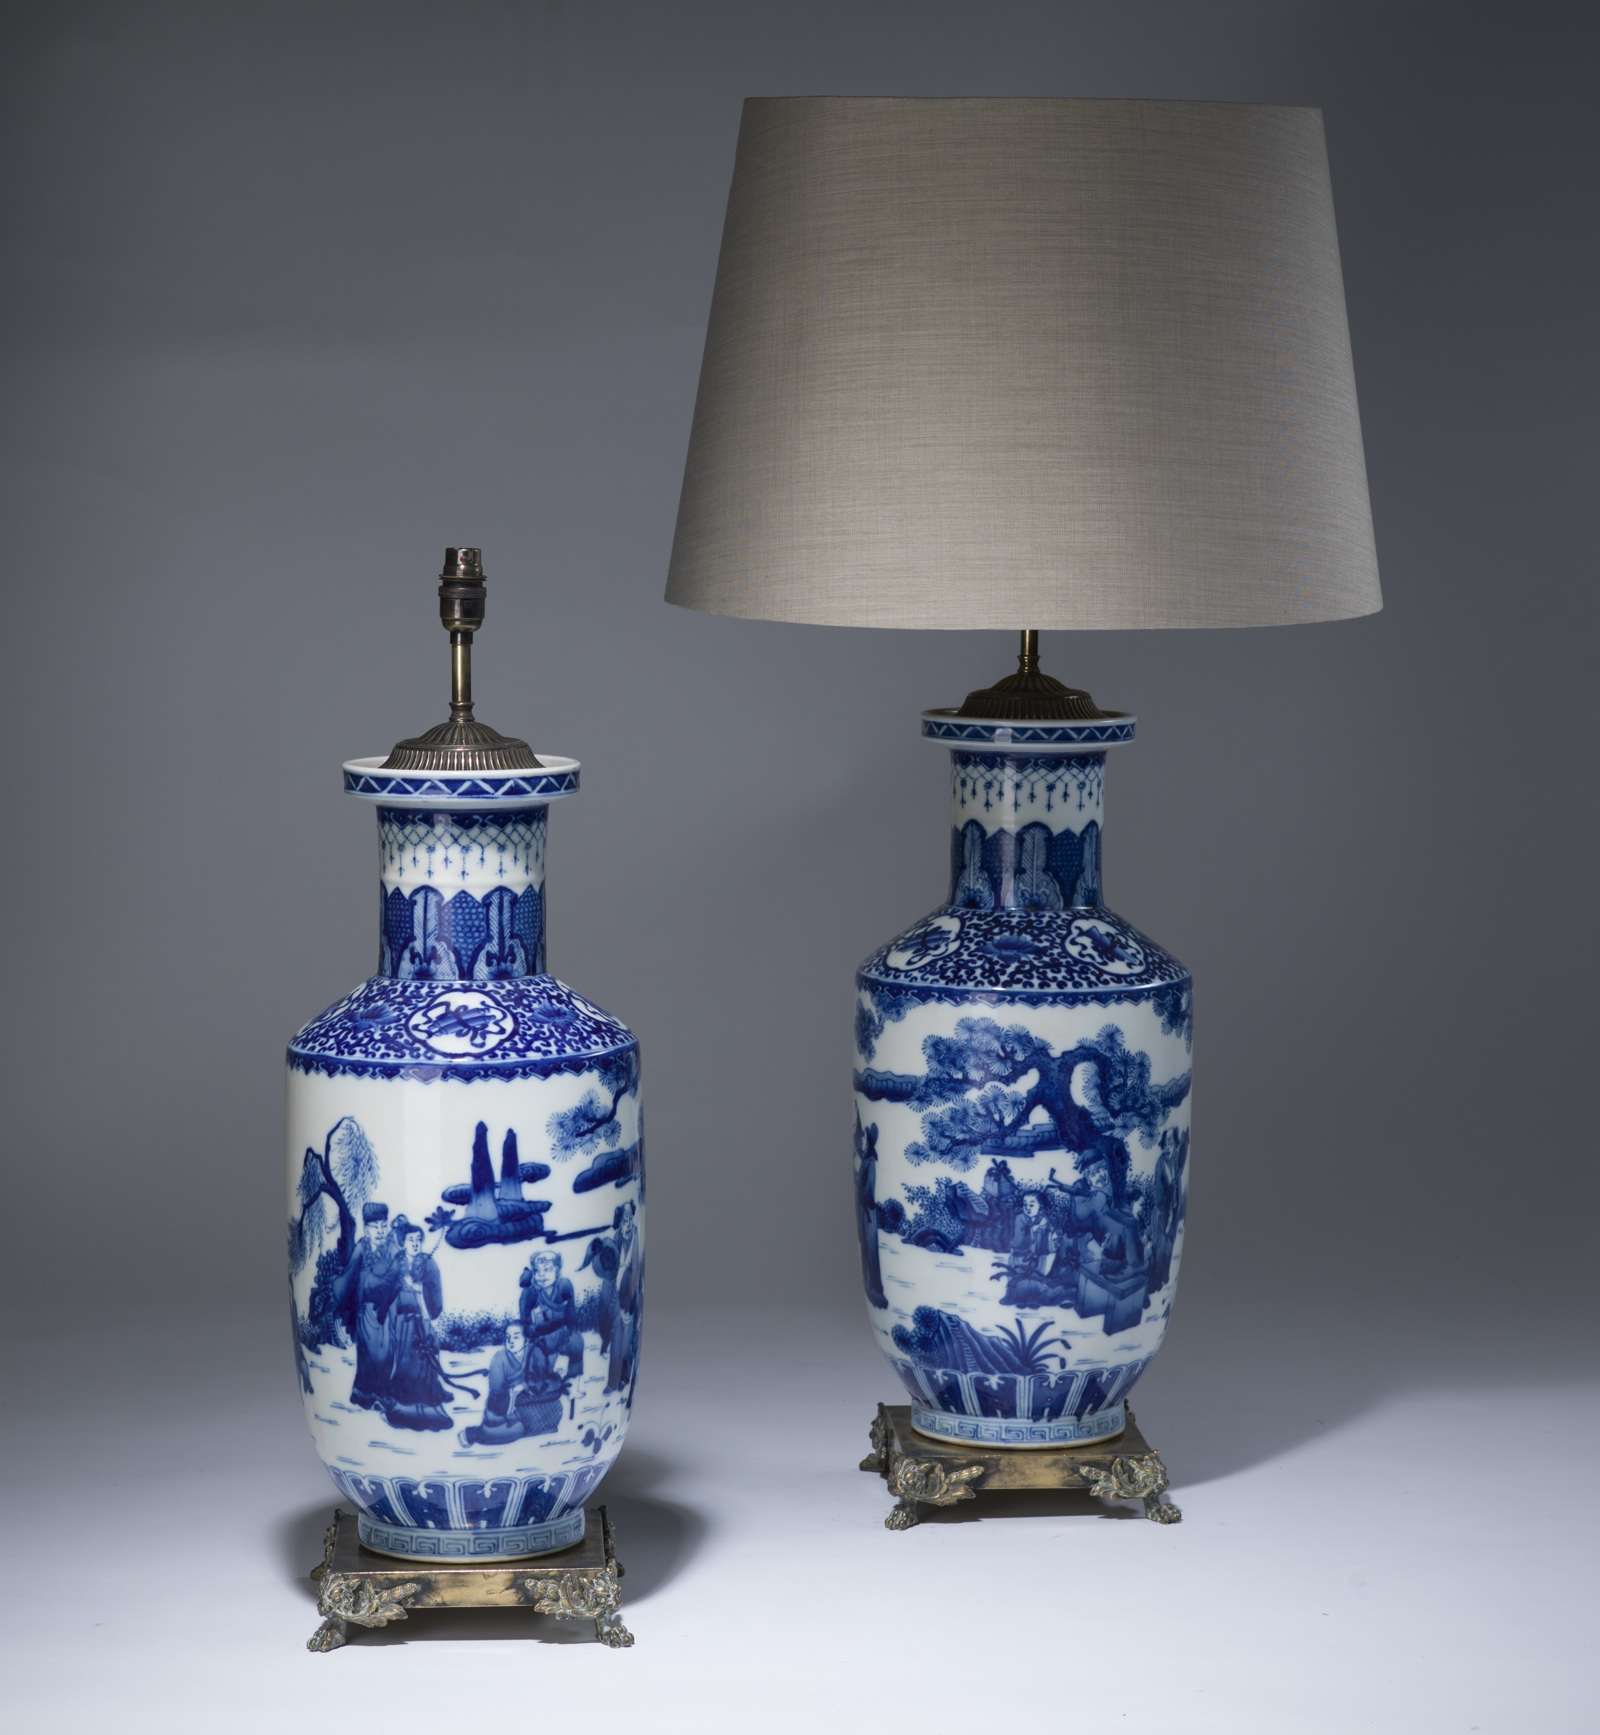 Pair Of Large Antique Blue White Ceramic Lamps On Distressed